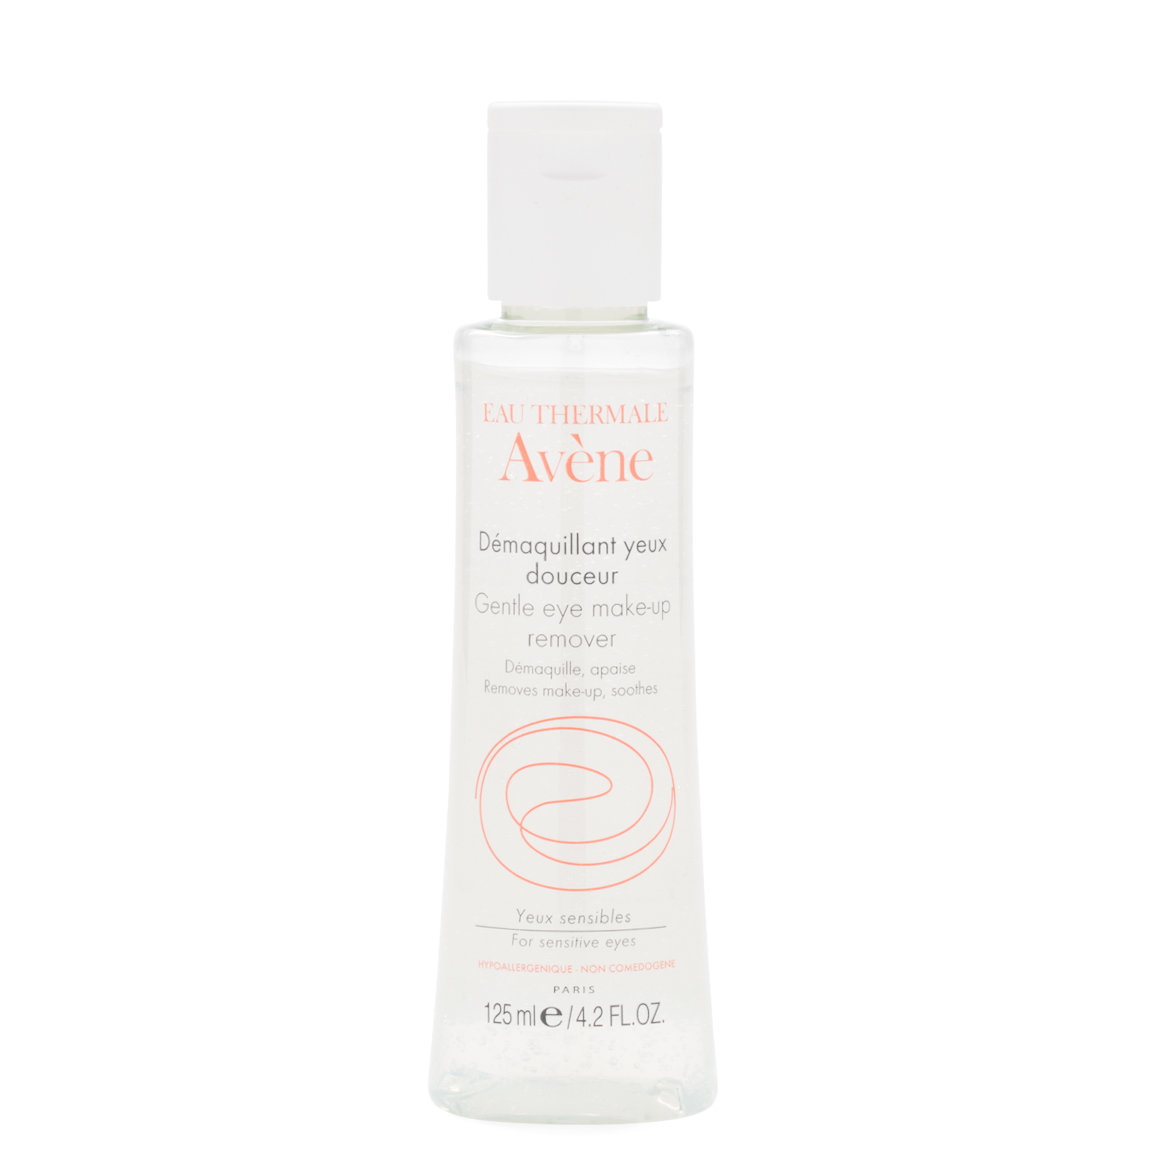 Eau Thermale Avene Gentle Eye Make-Up Remover product smear.